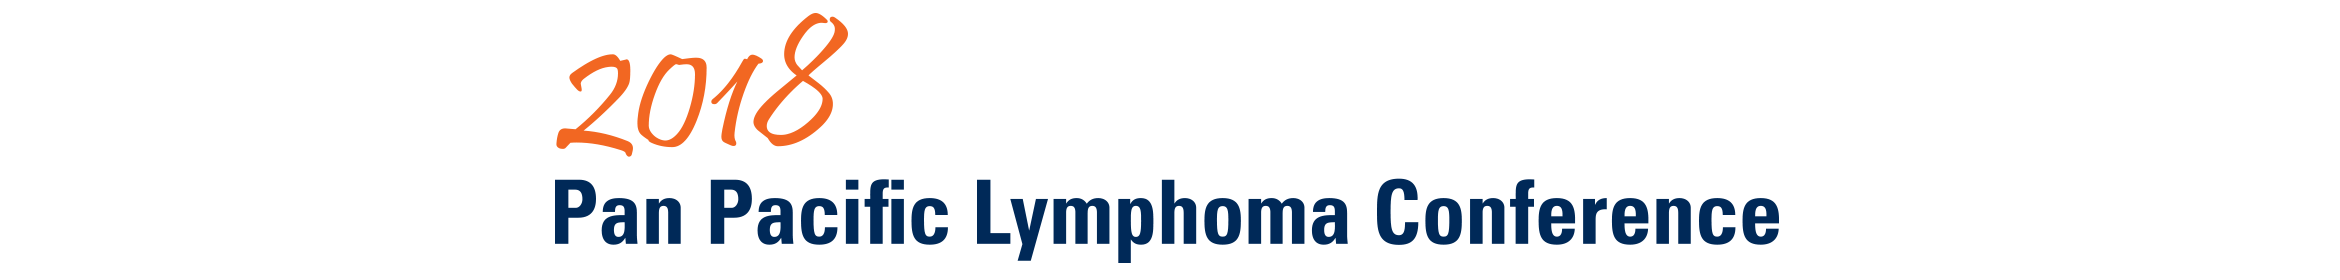 2018 Pan Pacific Lymphoma Conference Main banner